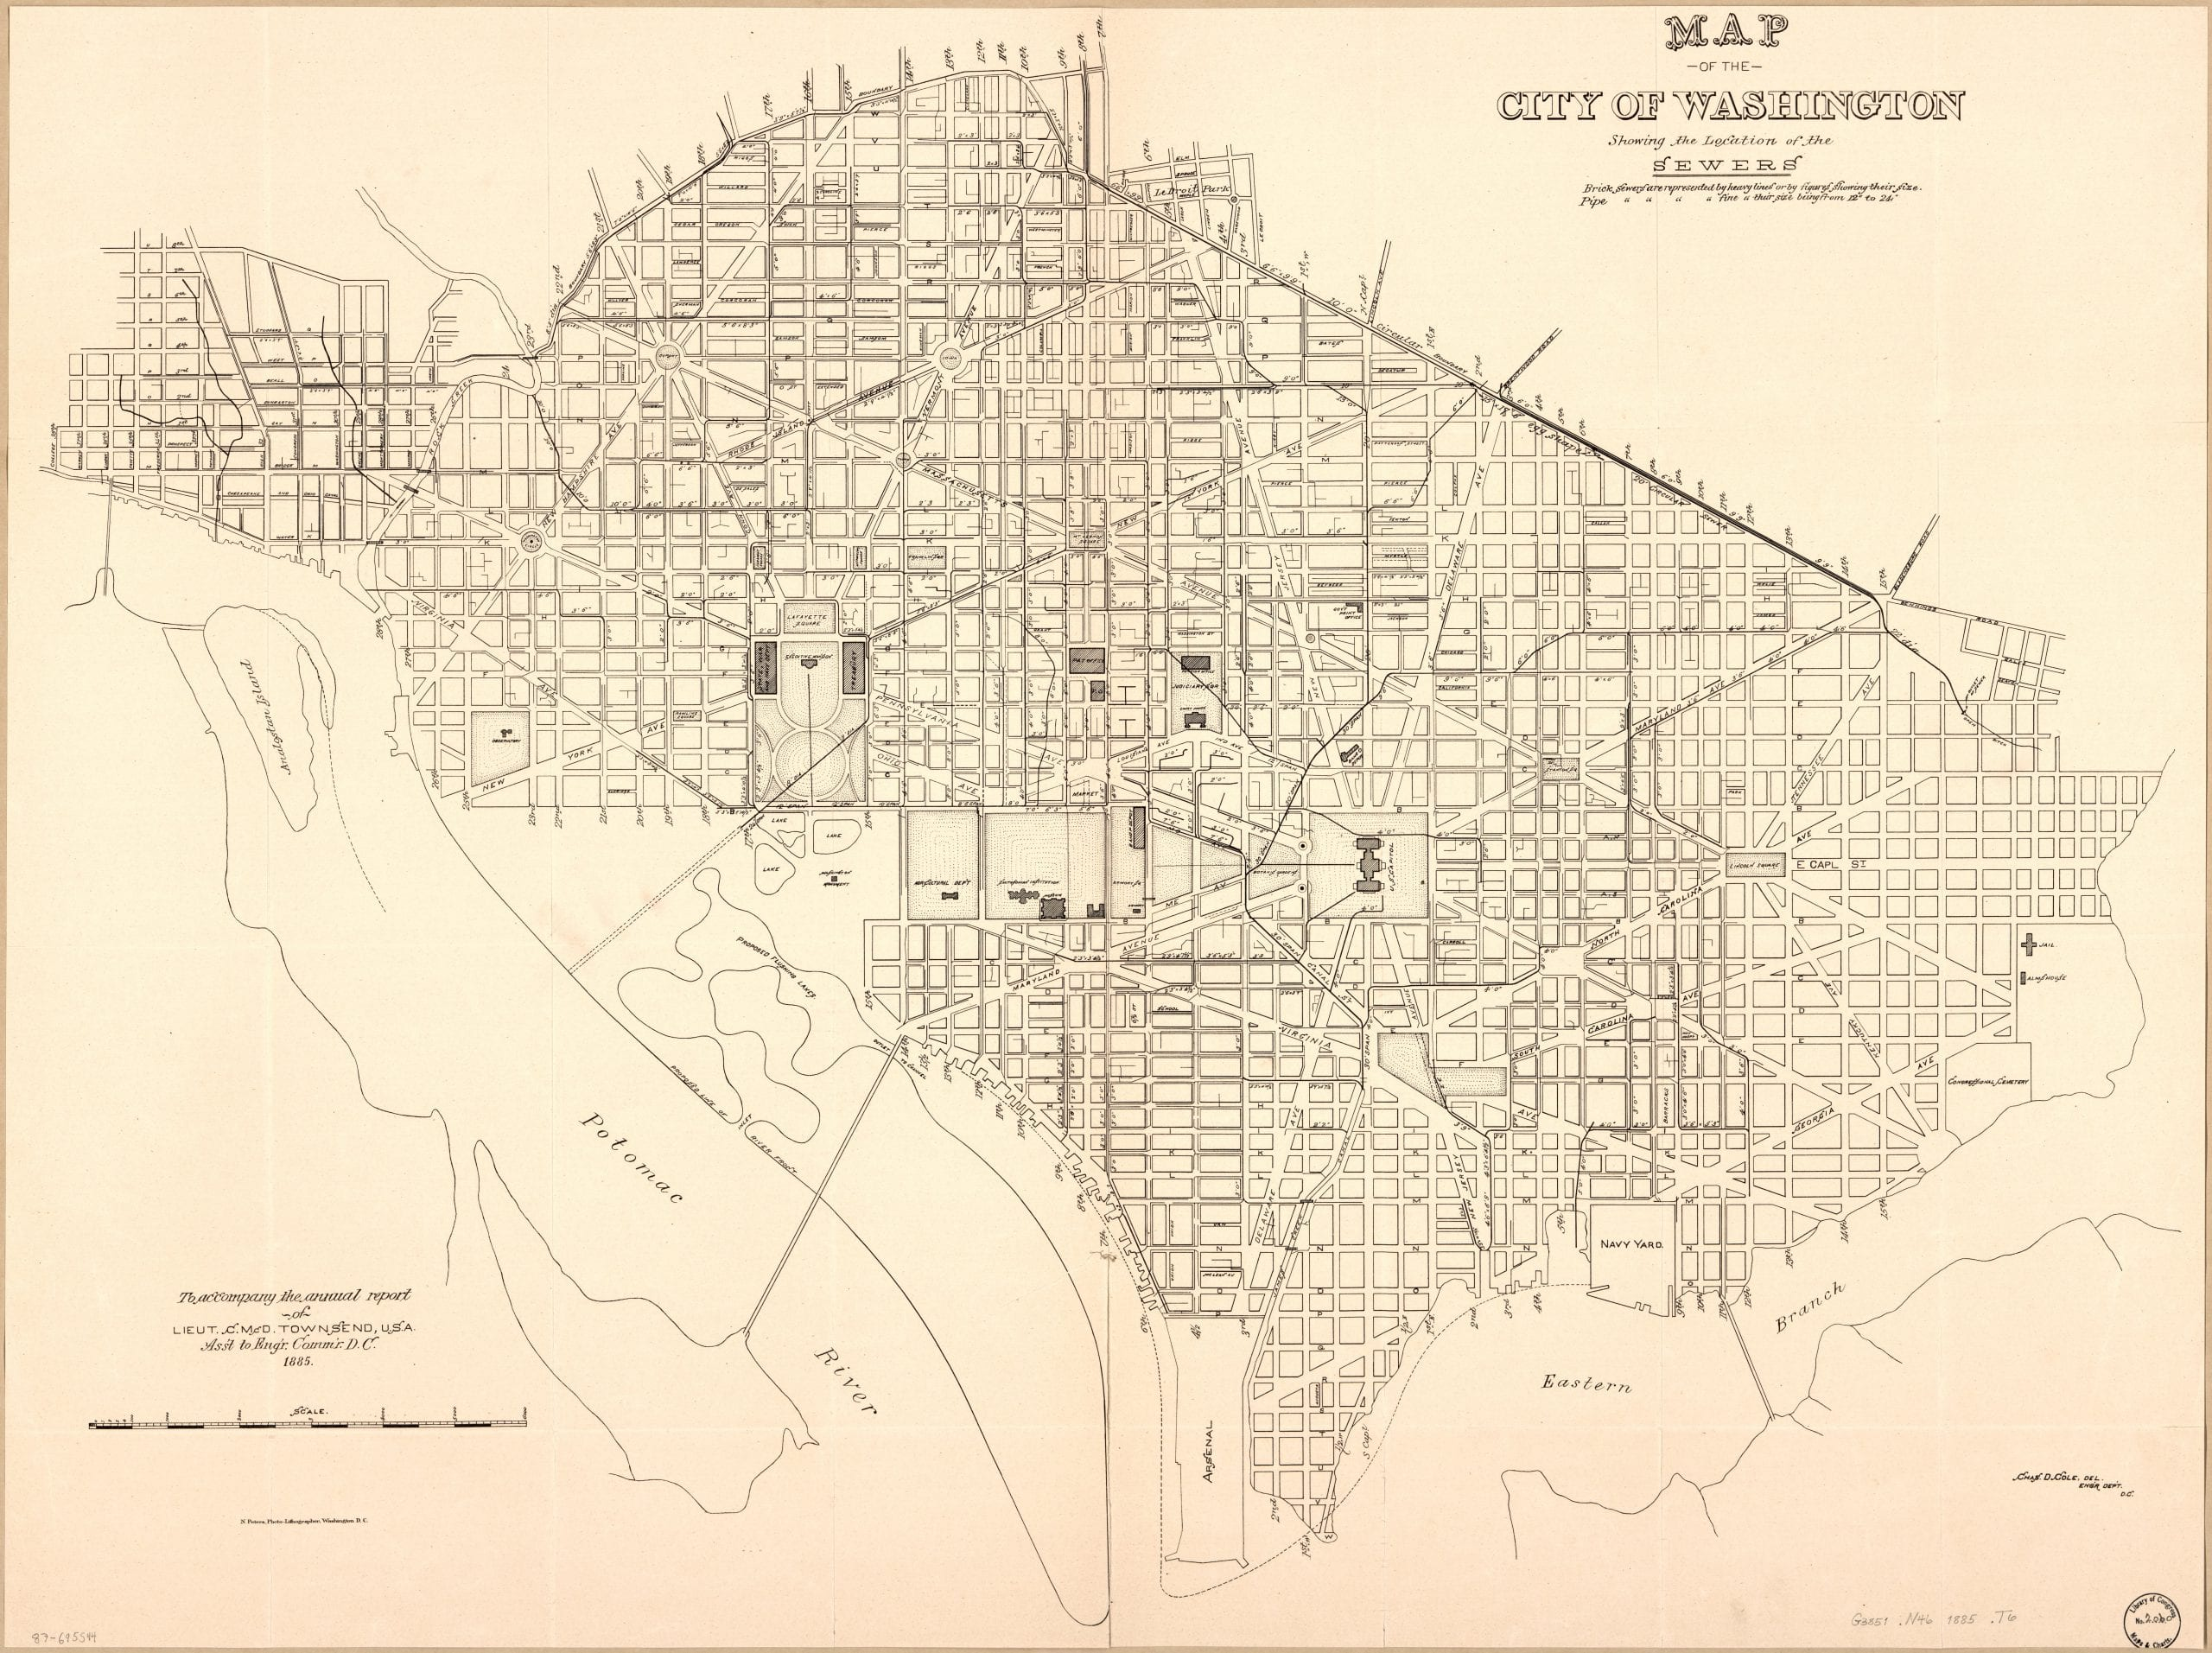 Map of the city of Washington showing the location of the sewers in 1885